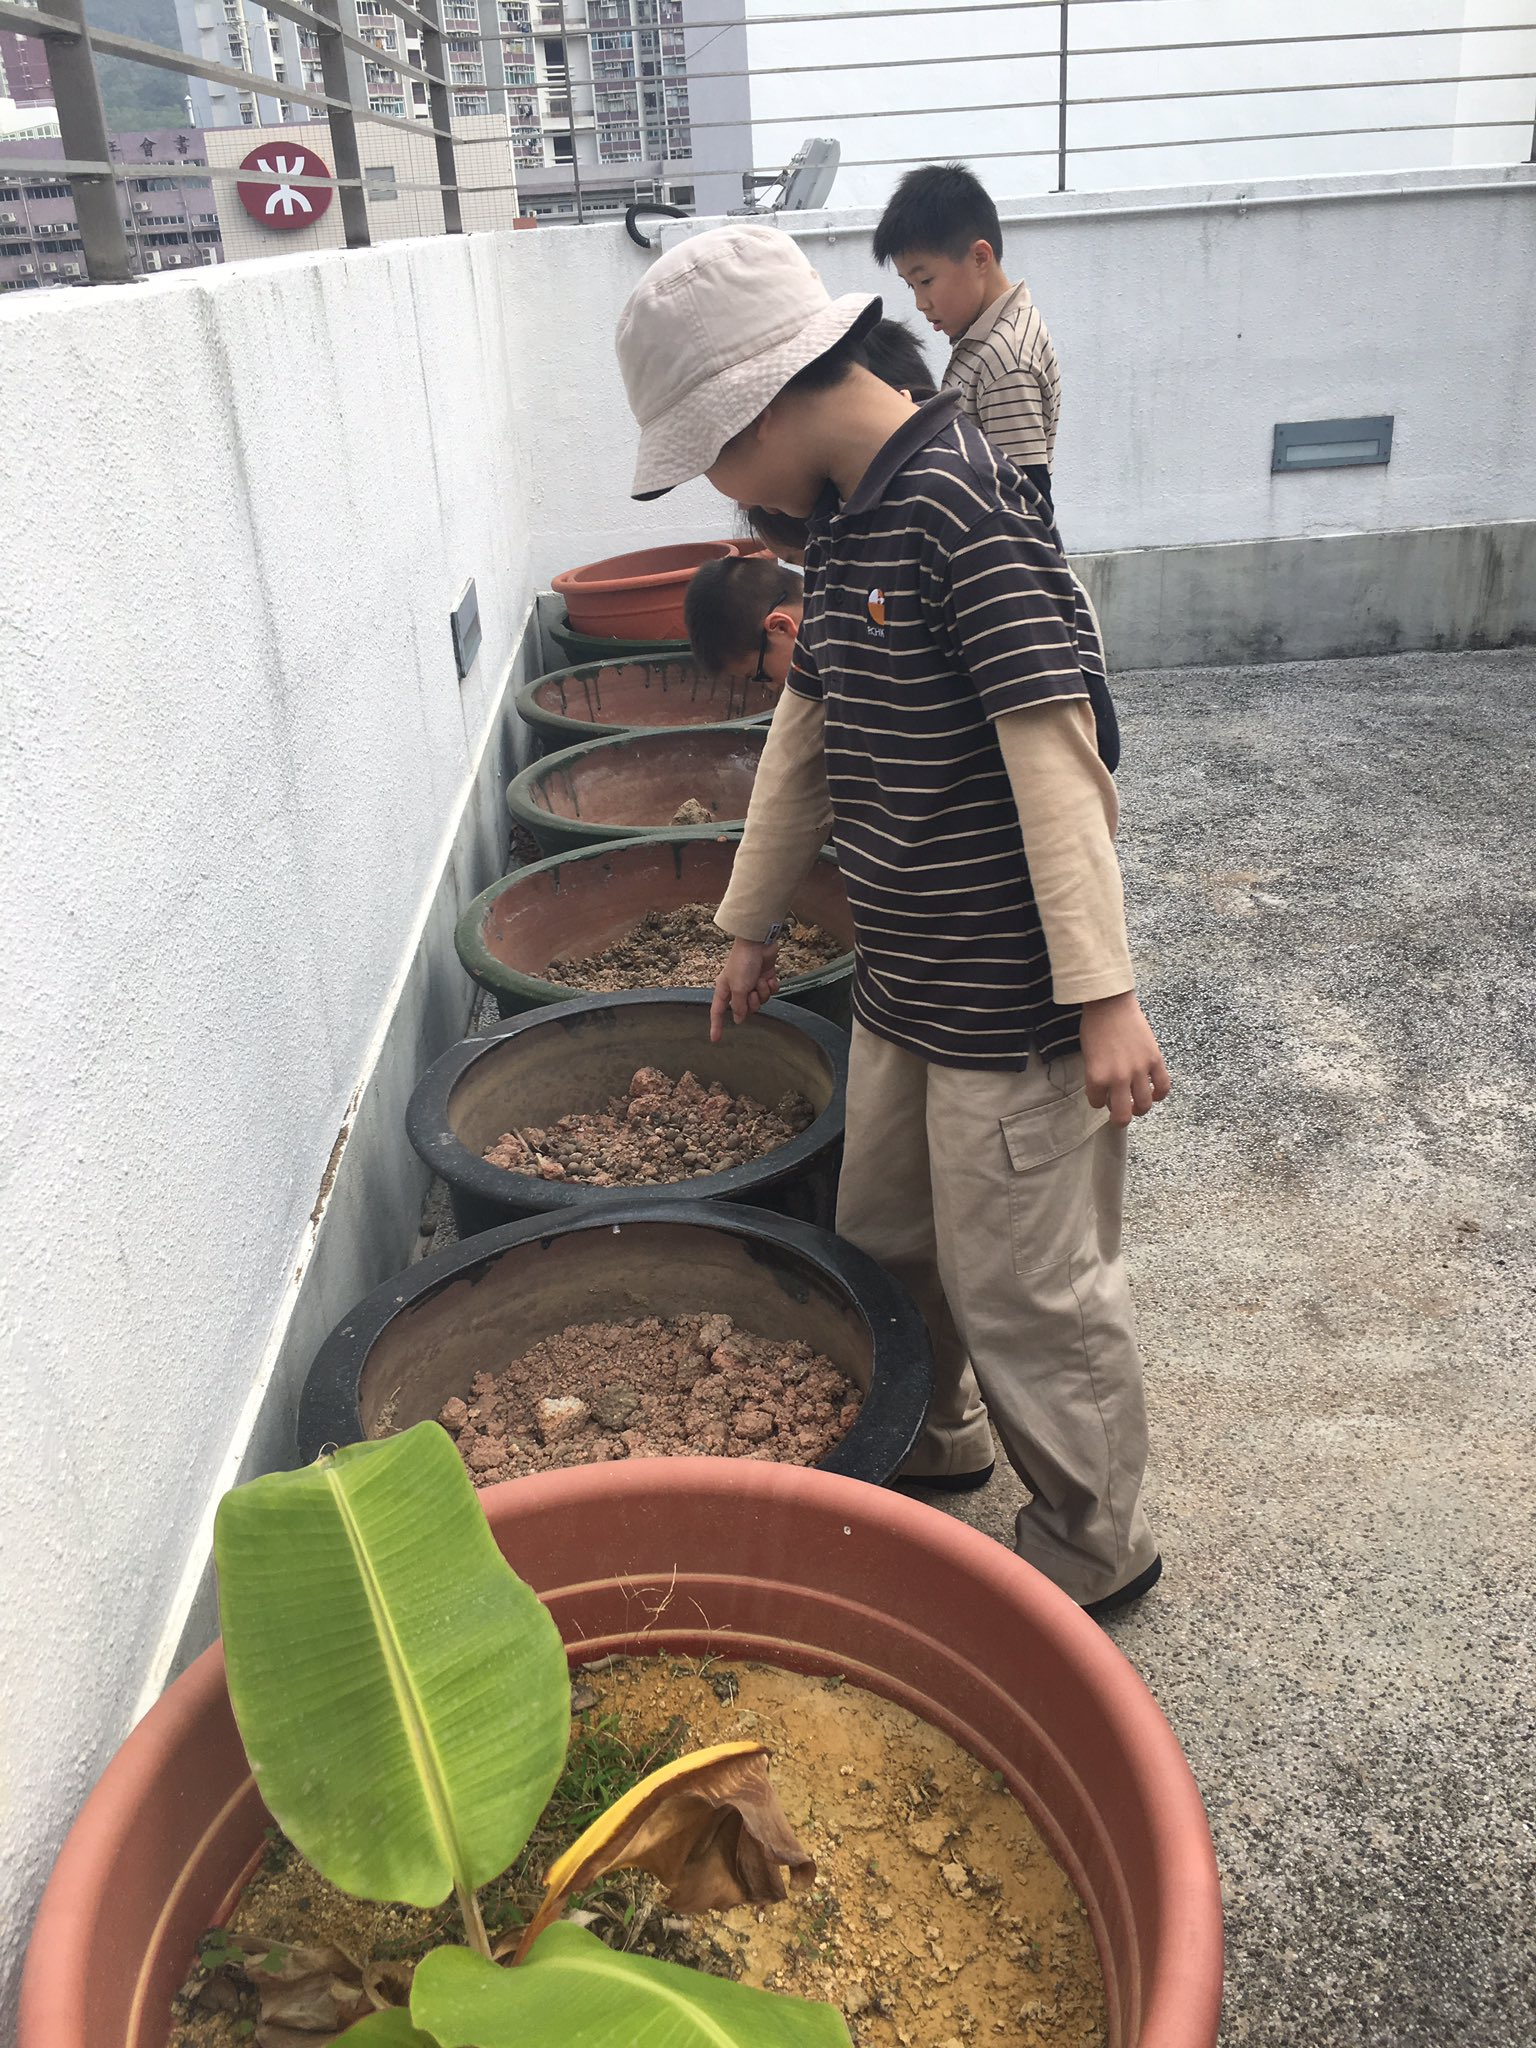 @RESVTlibrary we have pots for planting now! #awesome3LT #rchkpyp https://t.co/f2pmFYDszQ